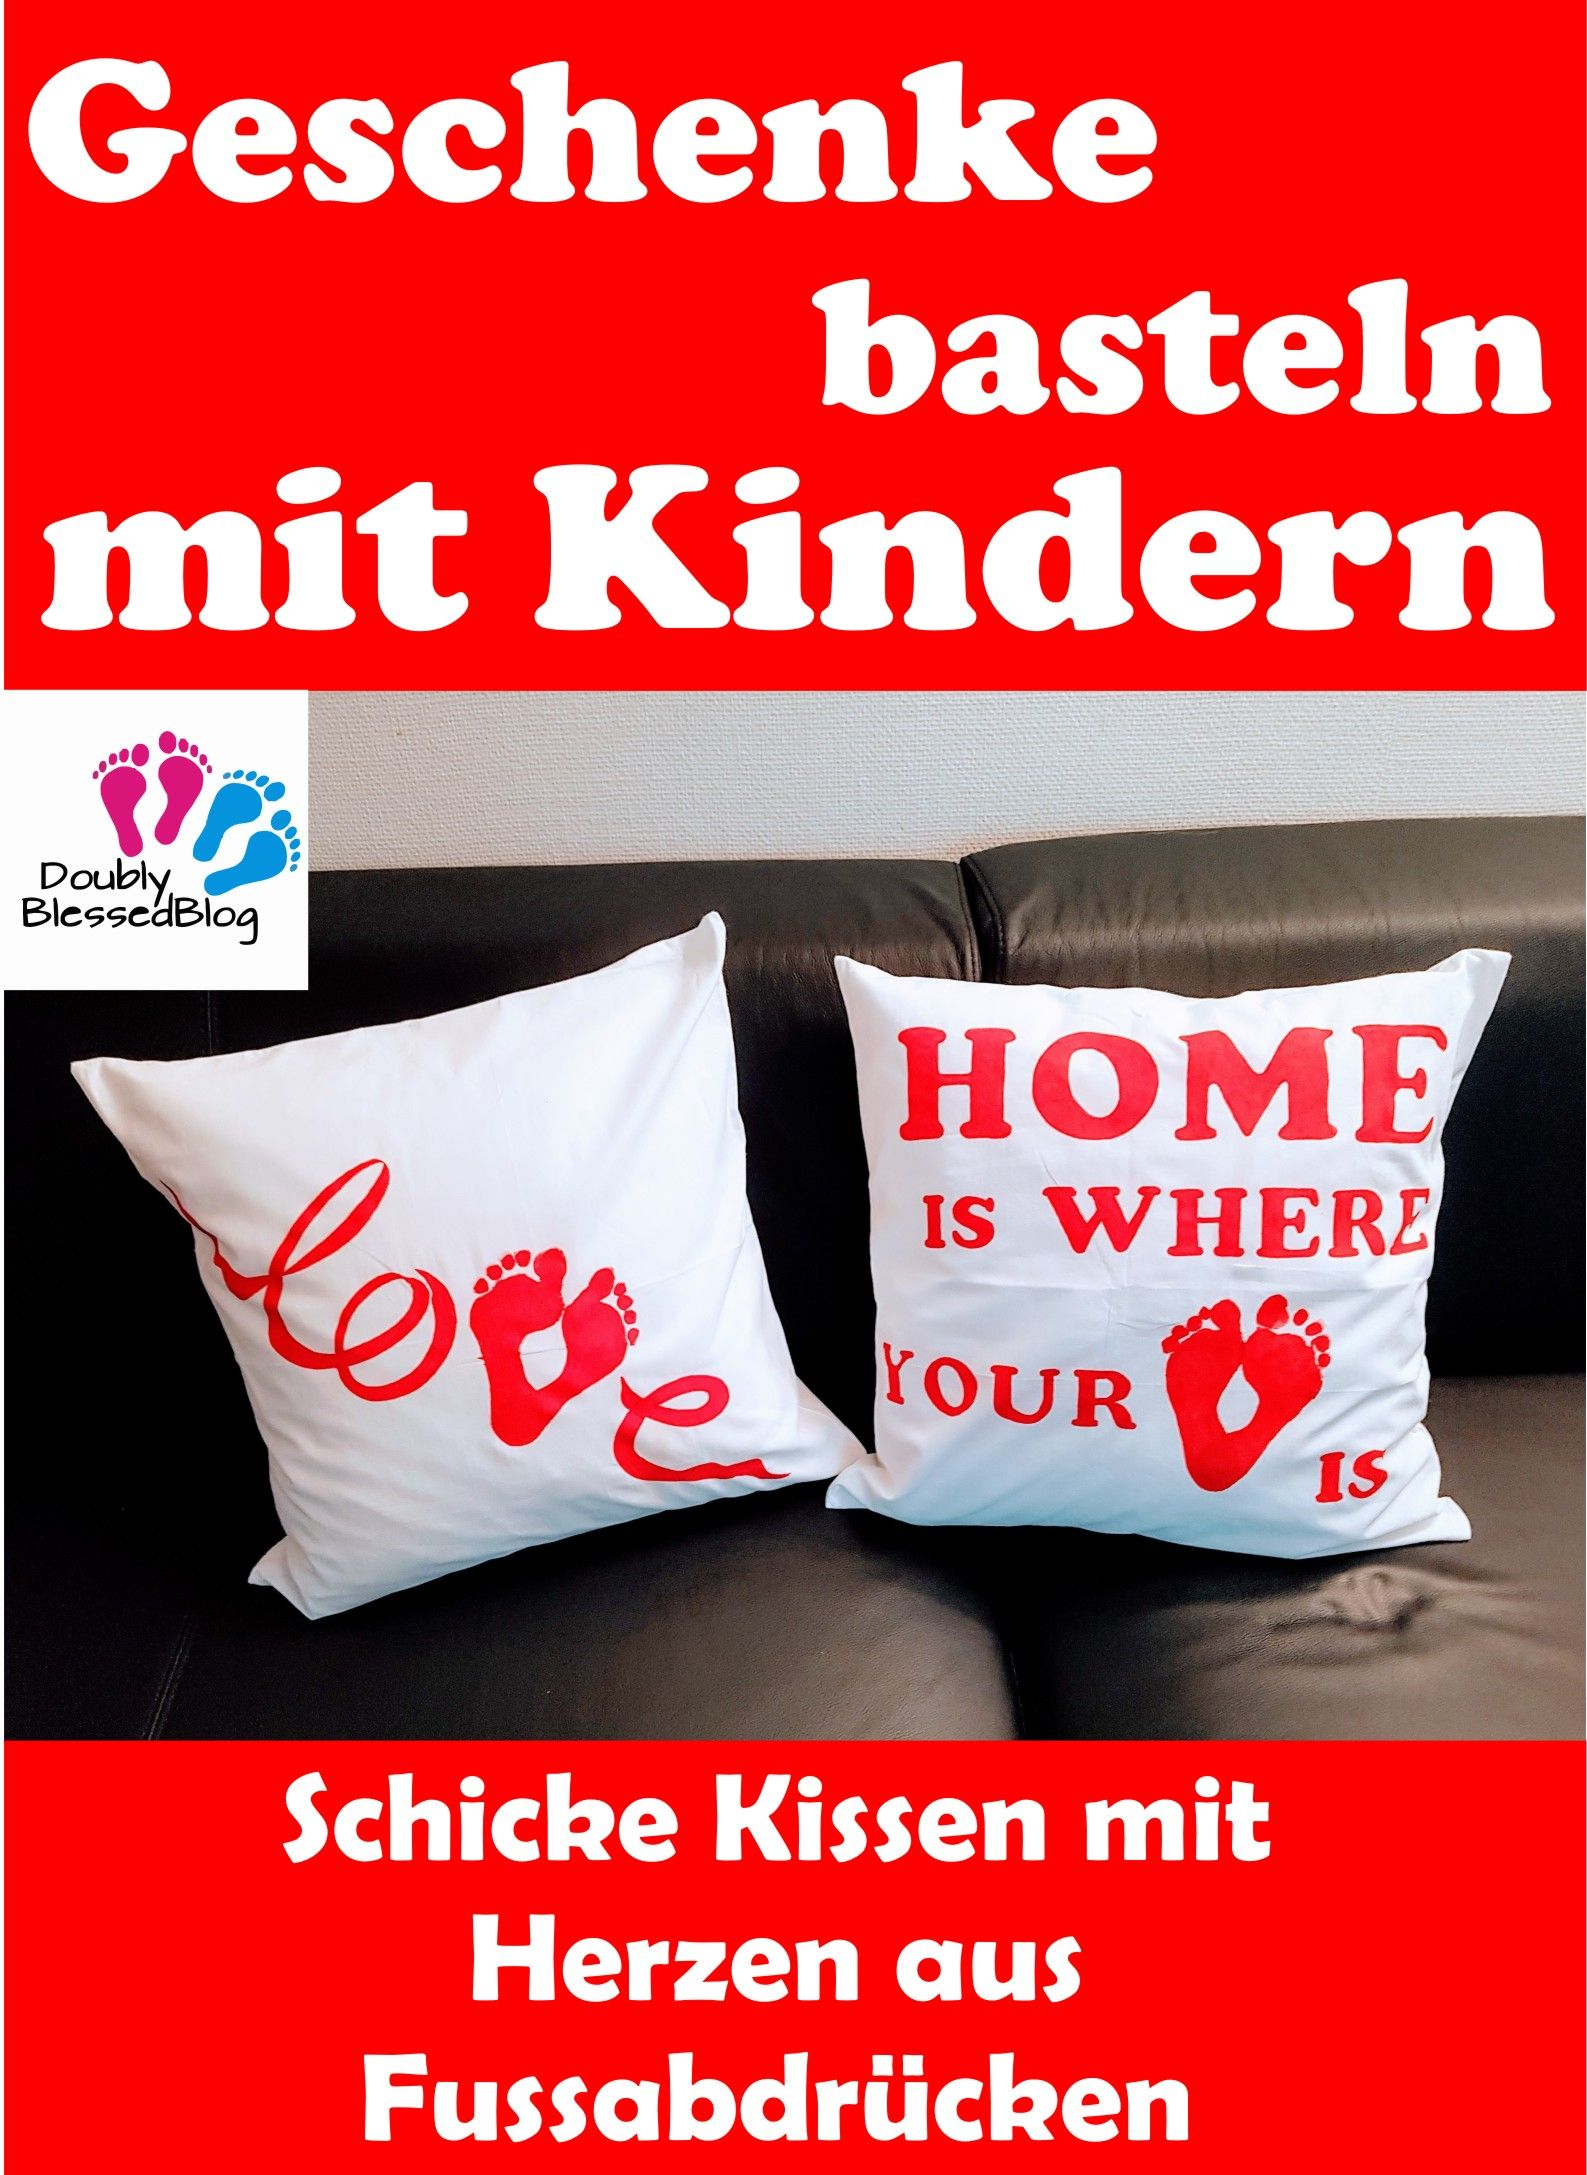 geschenke basteln mit kindern schicke kissen mit herzen aus fussabdr cken geschenke basteln. Black Bedroom Furniture Sets. Home Design Ideas